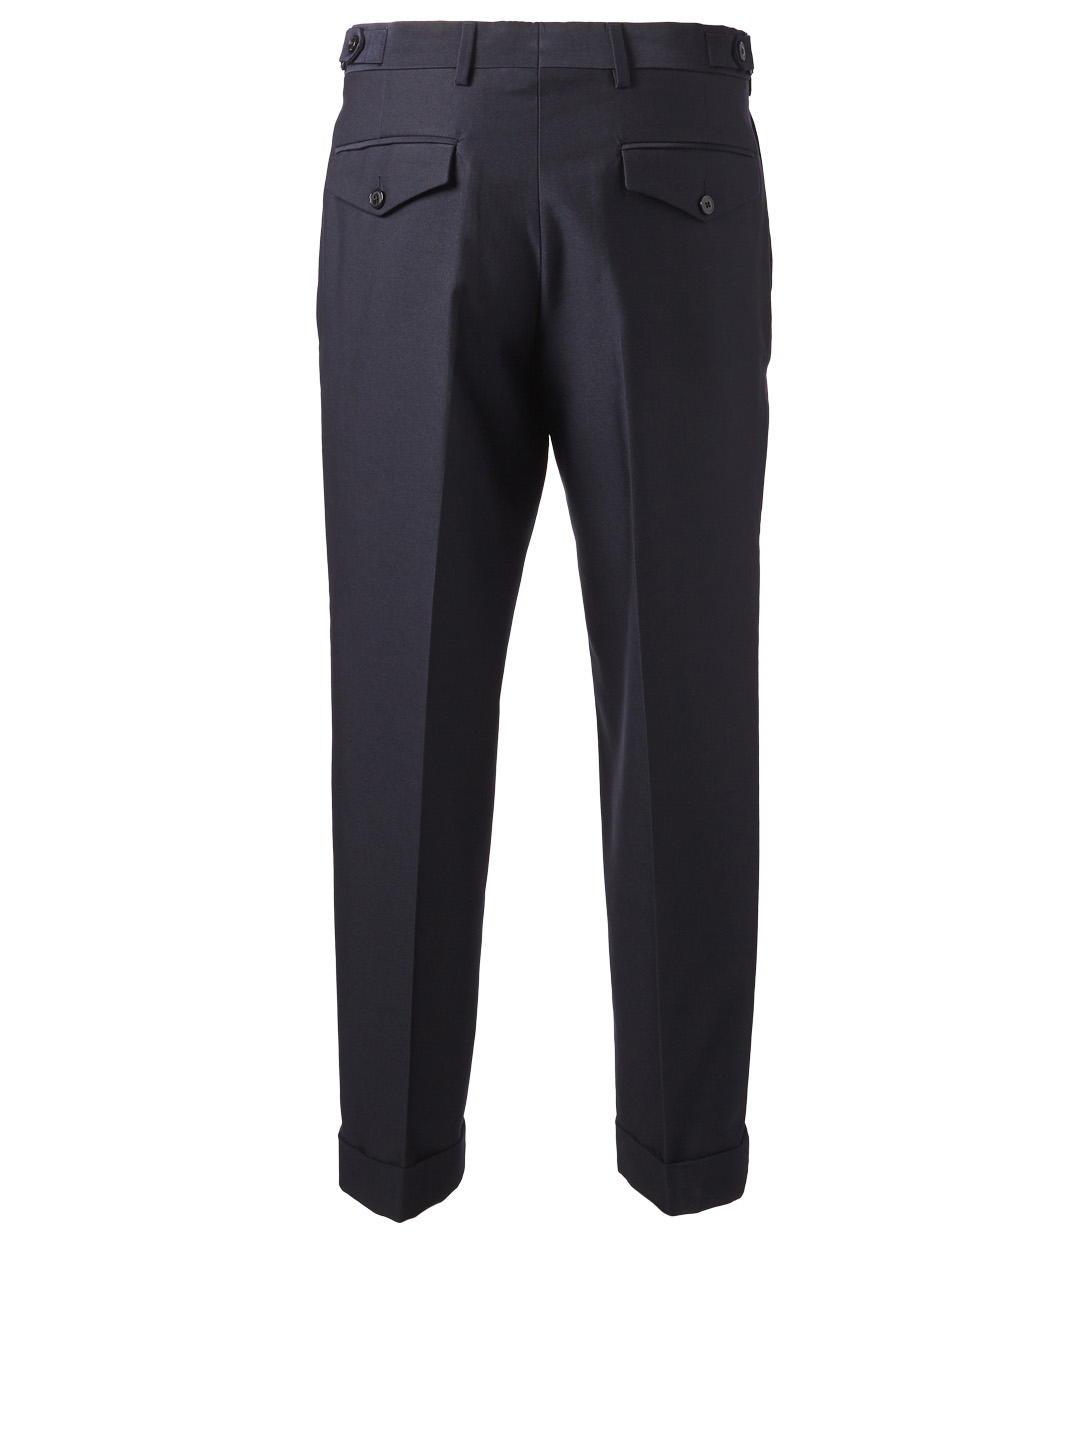 DRIES VAN NOTEN Philip Wool Twill Pants Men's Blue